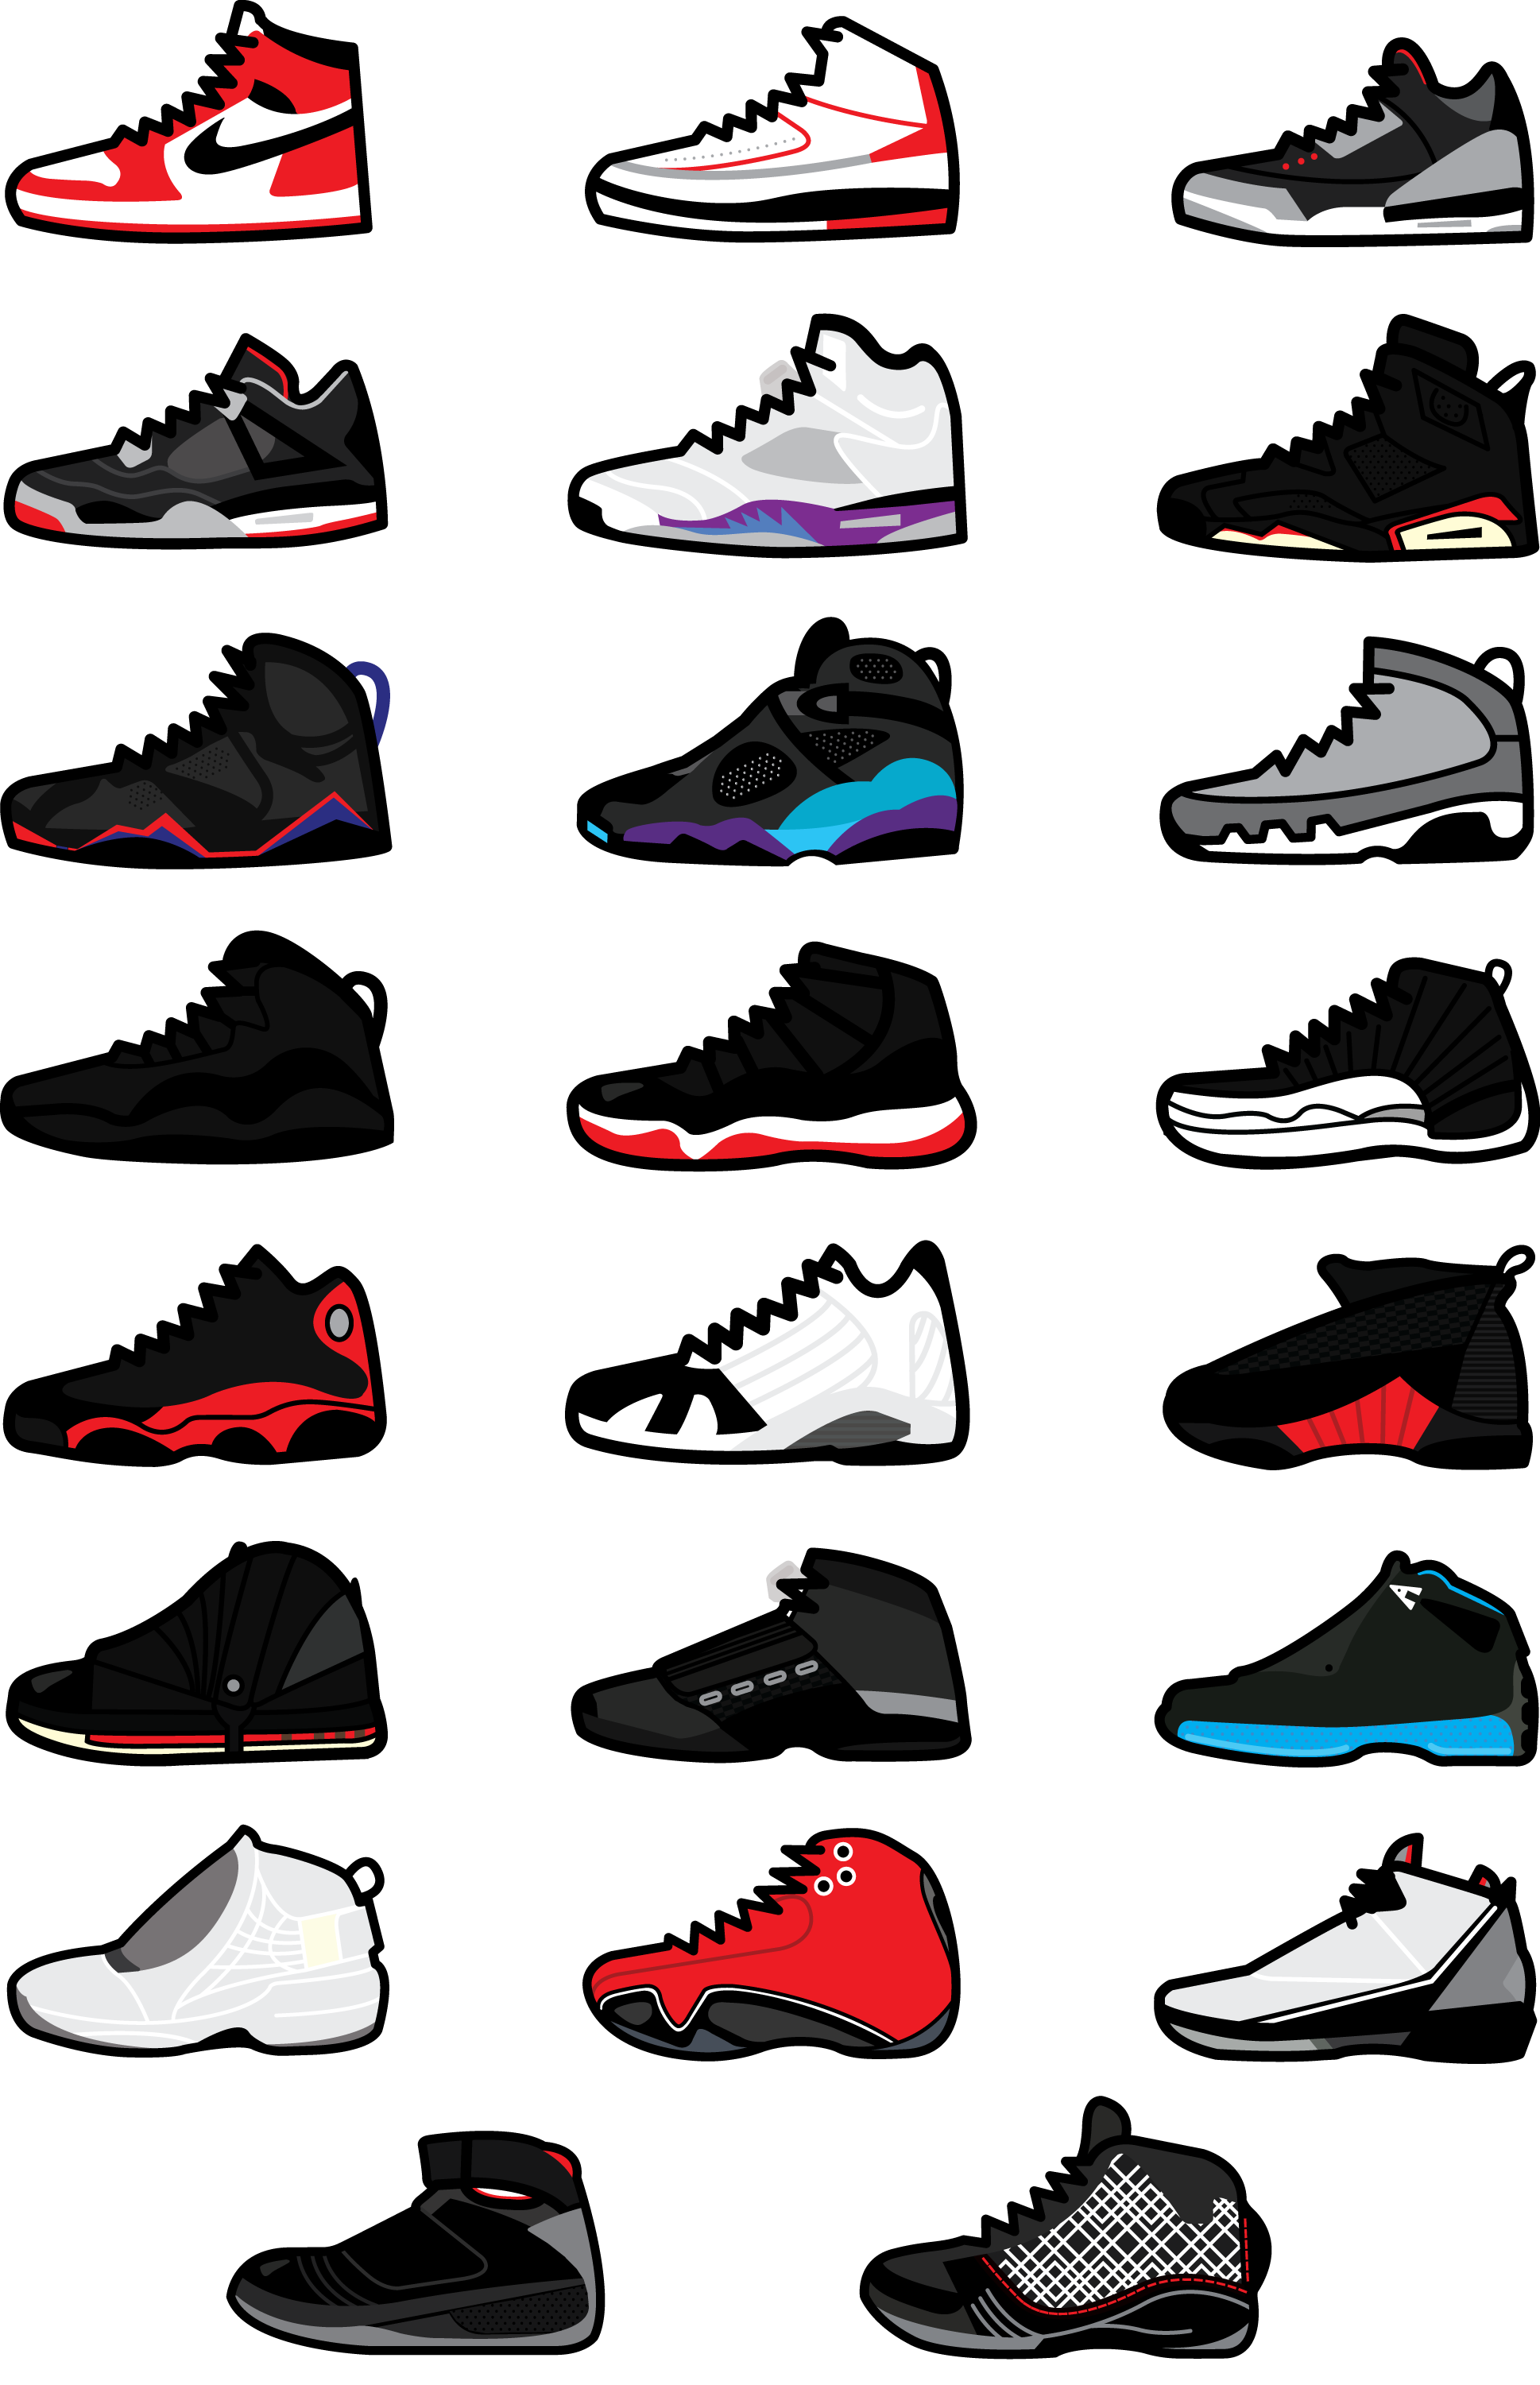 pretty nice 2fee4 770e4 RIM DE KROON DESIGN - JORDAN - MJ Nike Wallpaper, Jordan Shoes Wallpaper,  Stickers